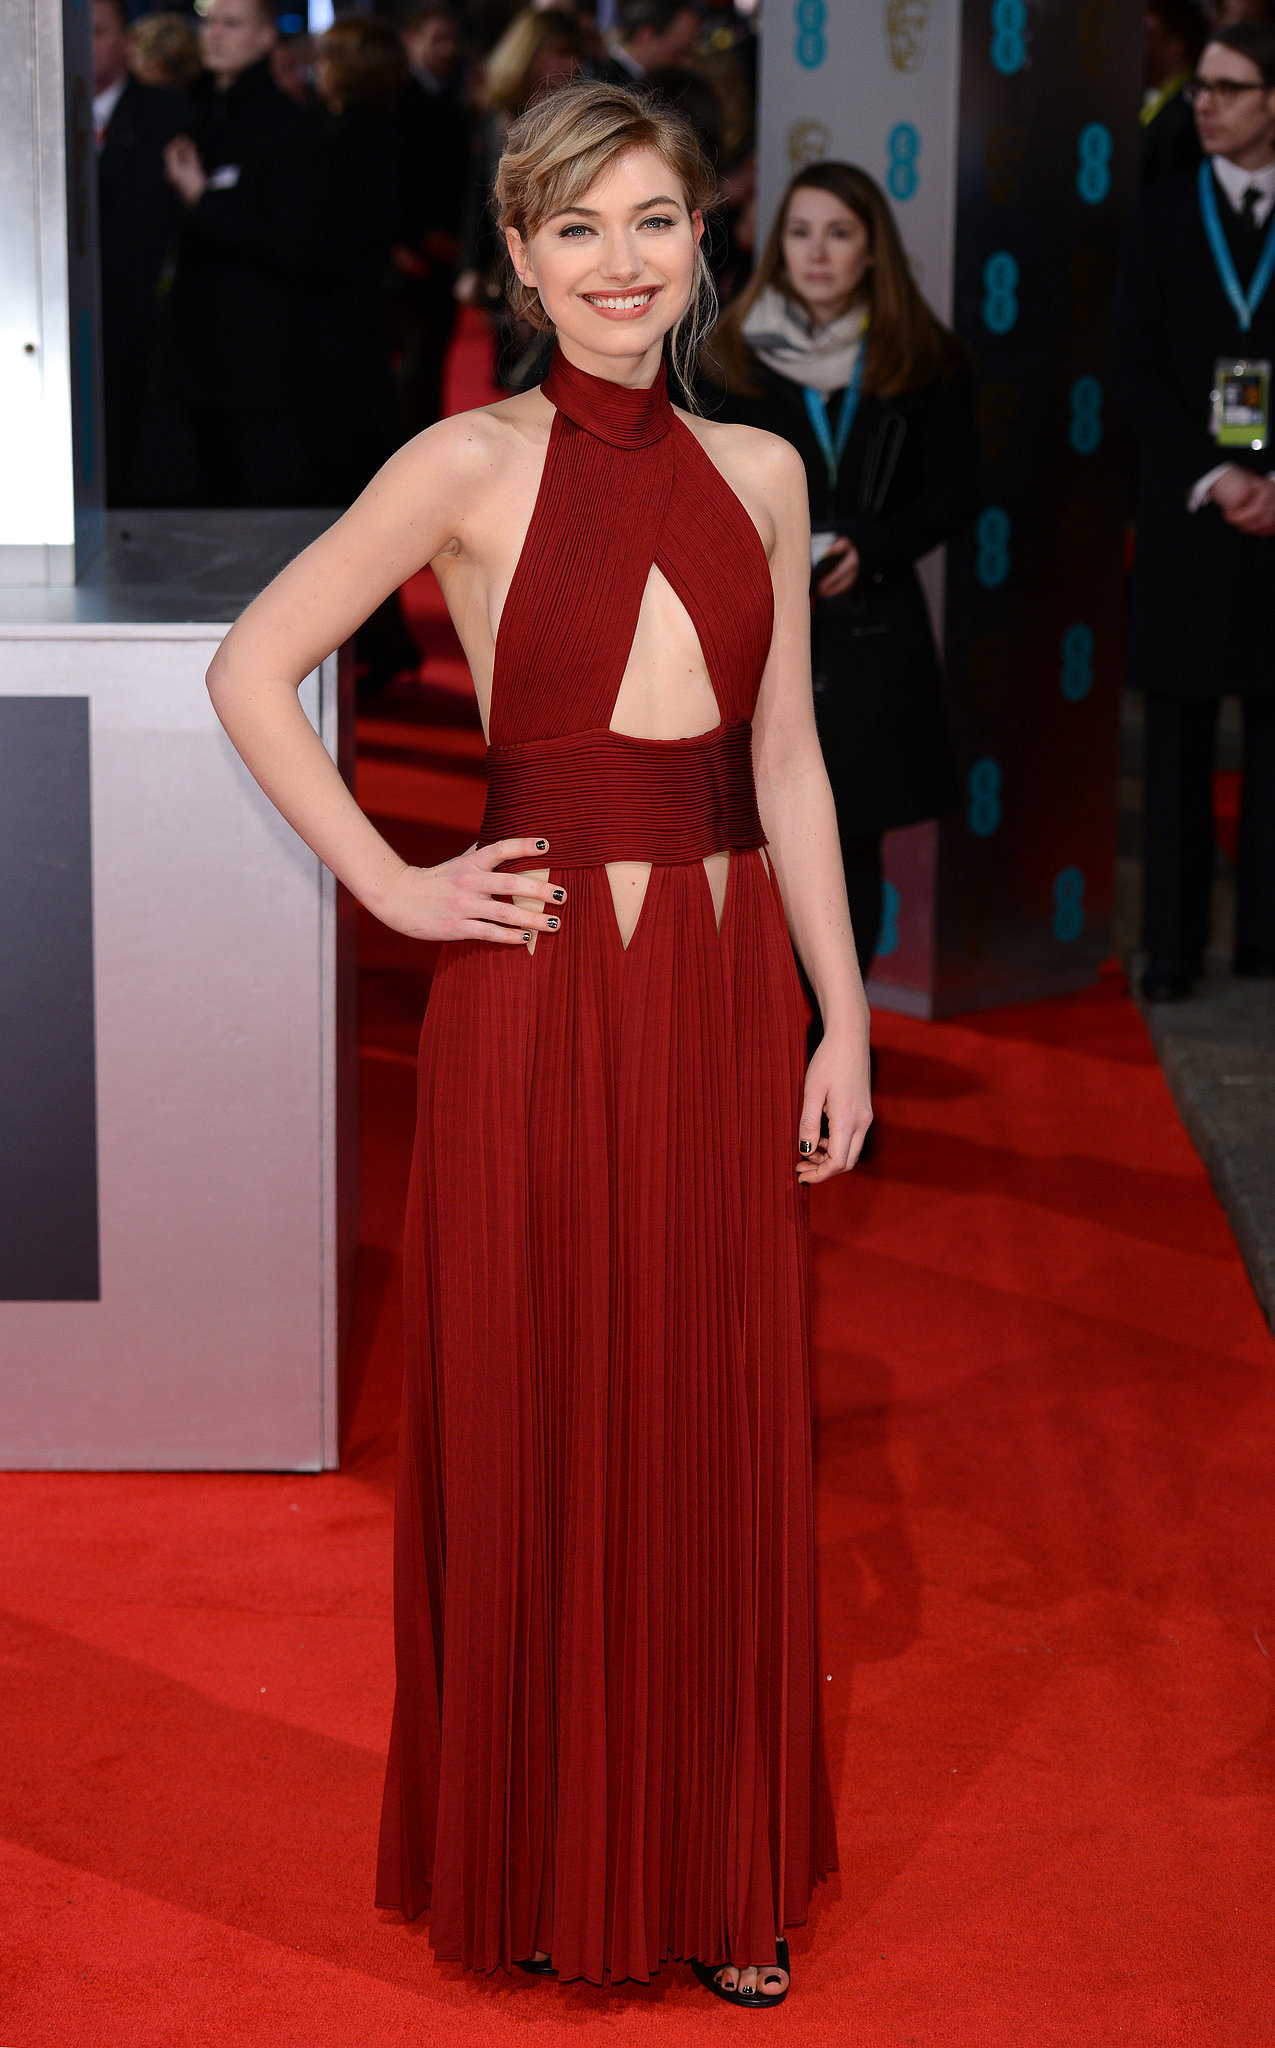 At the BAFTA Awards, Imogen wore a dramatic red cutout gown by Givenchy.